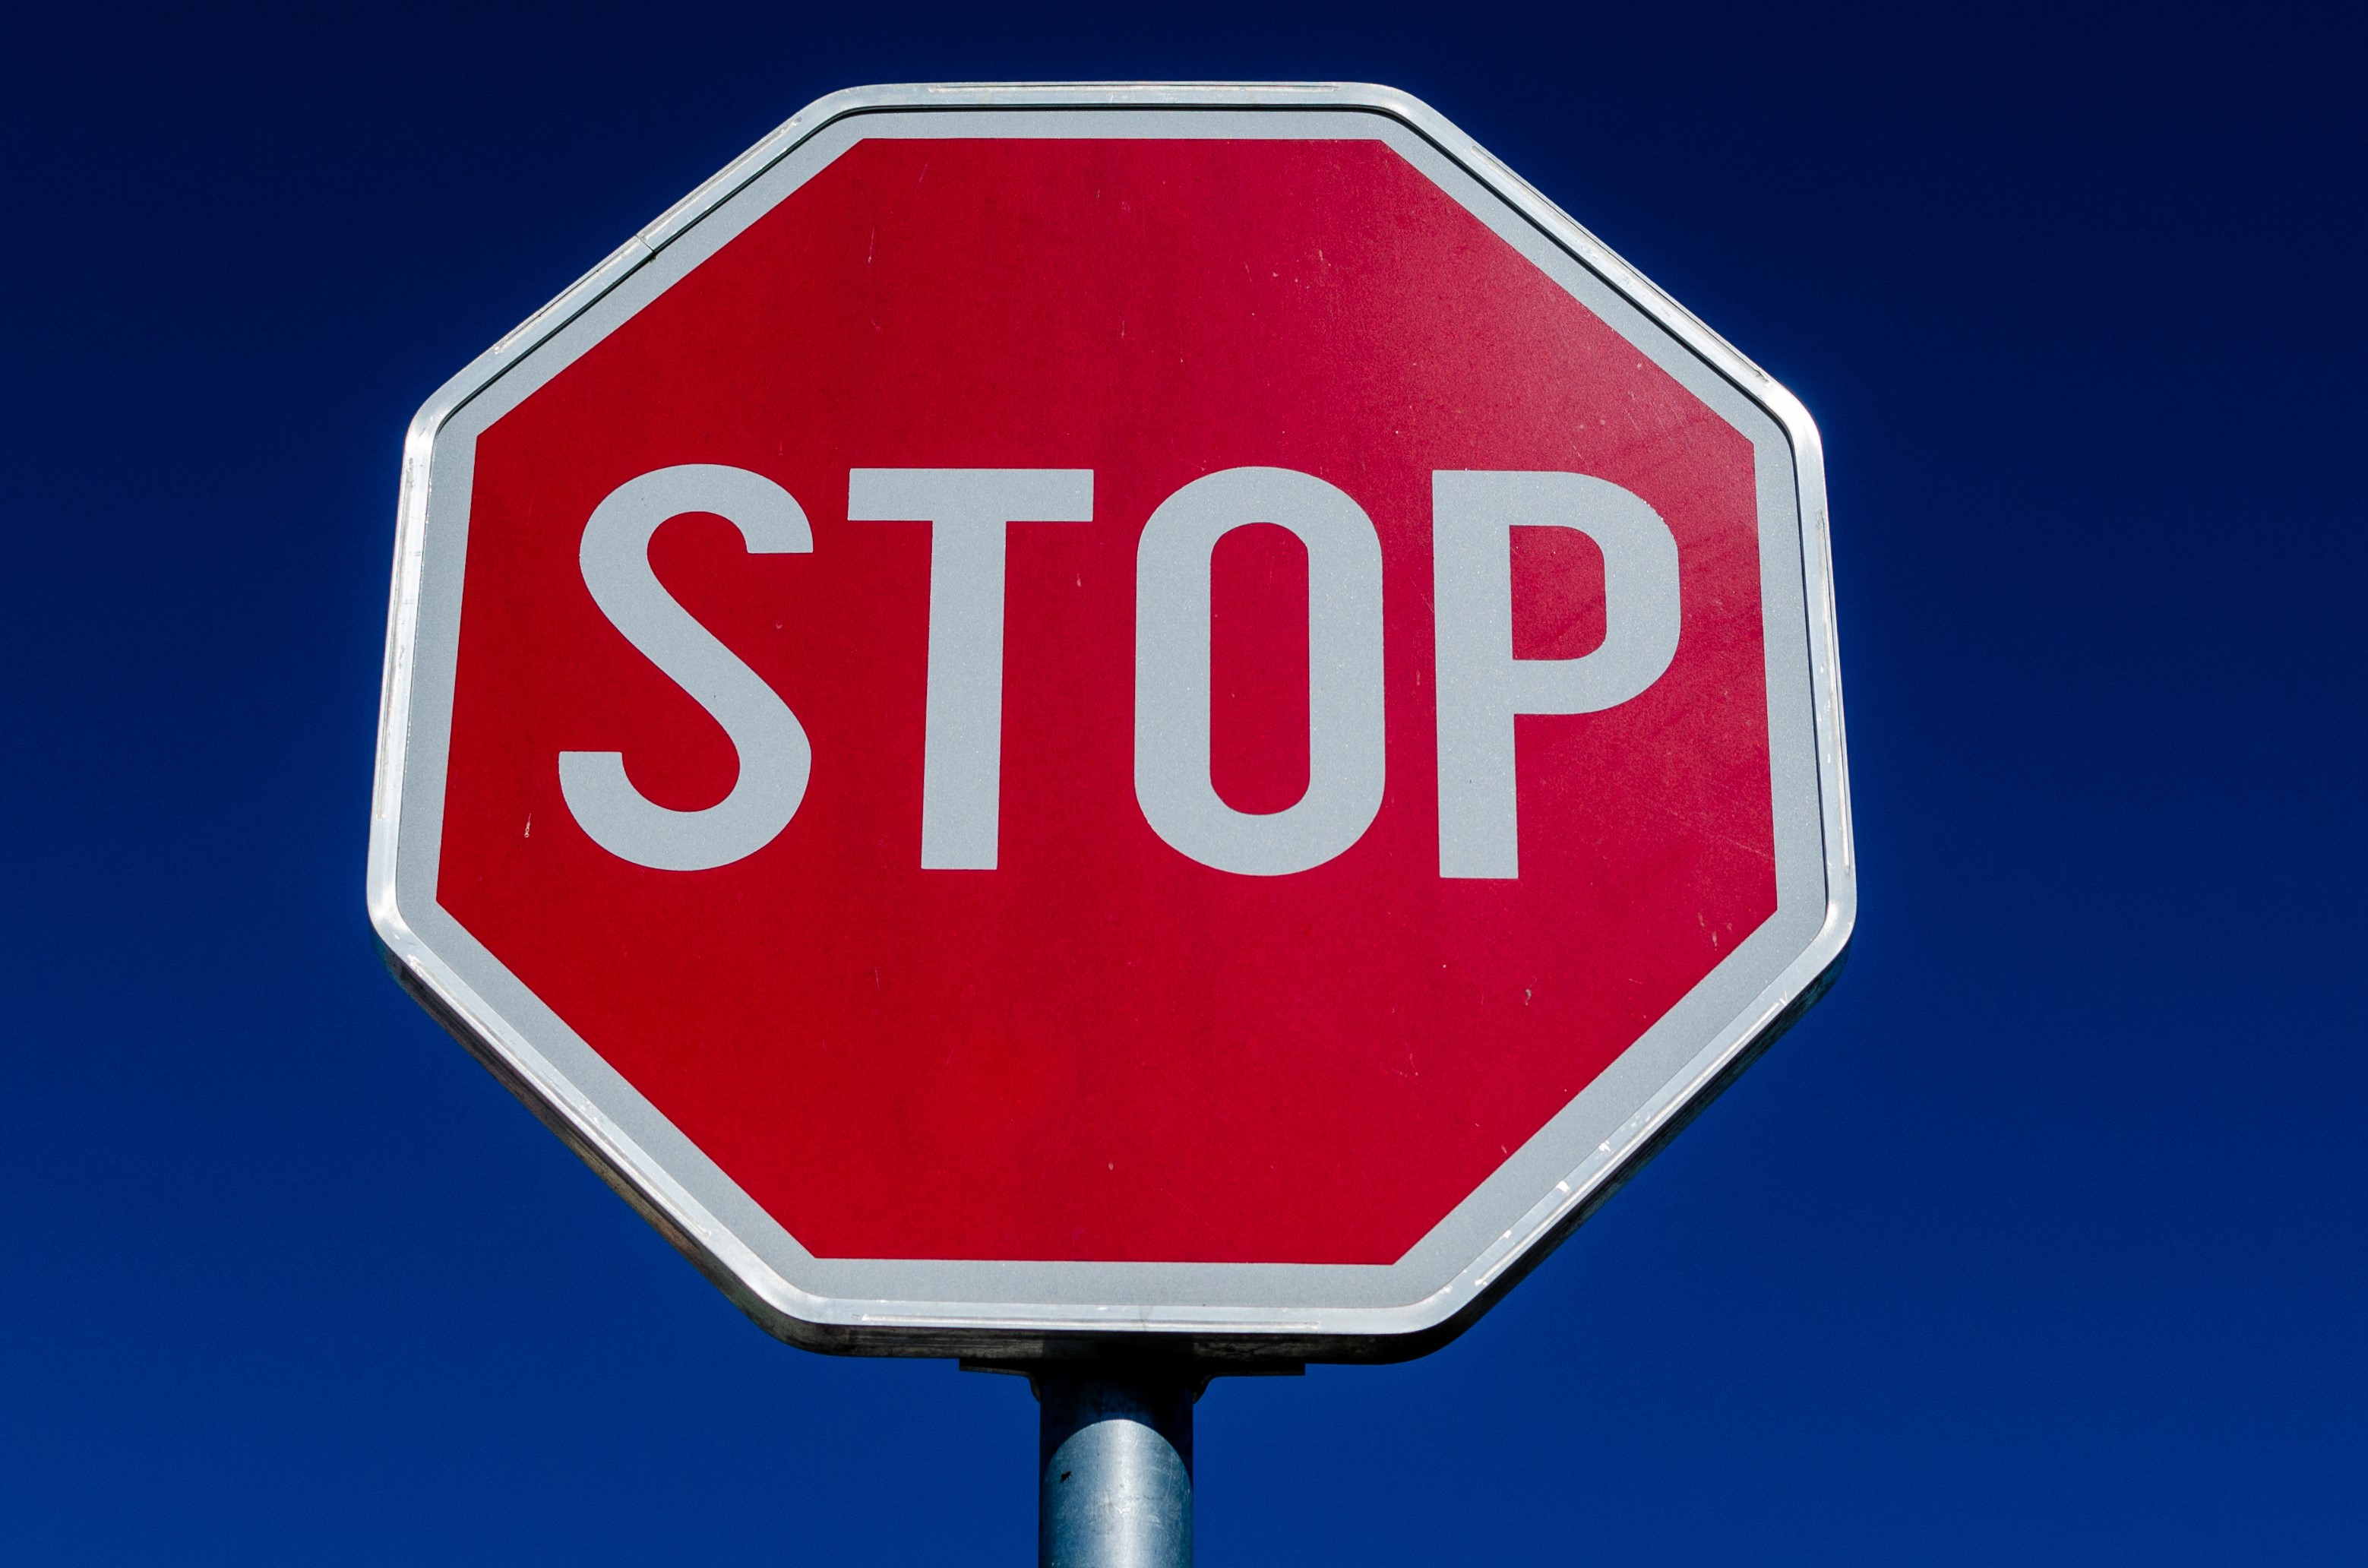 A close up image of a stop sign.